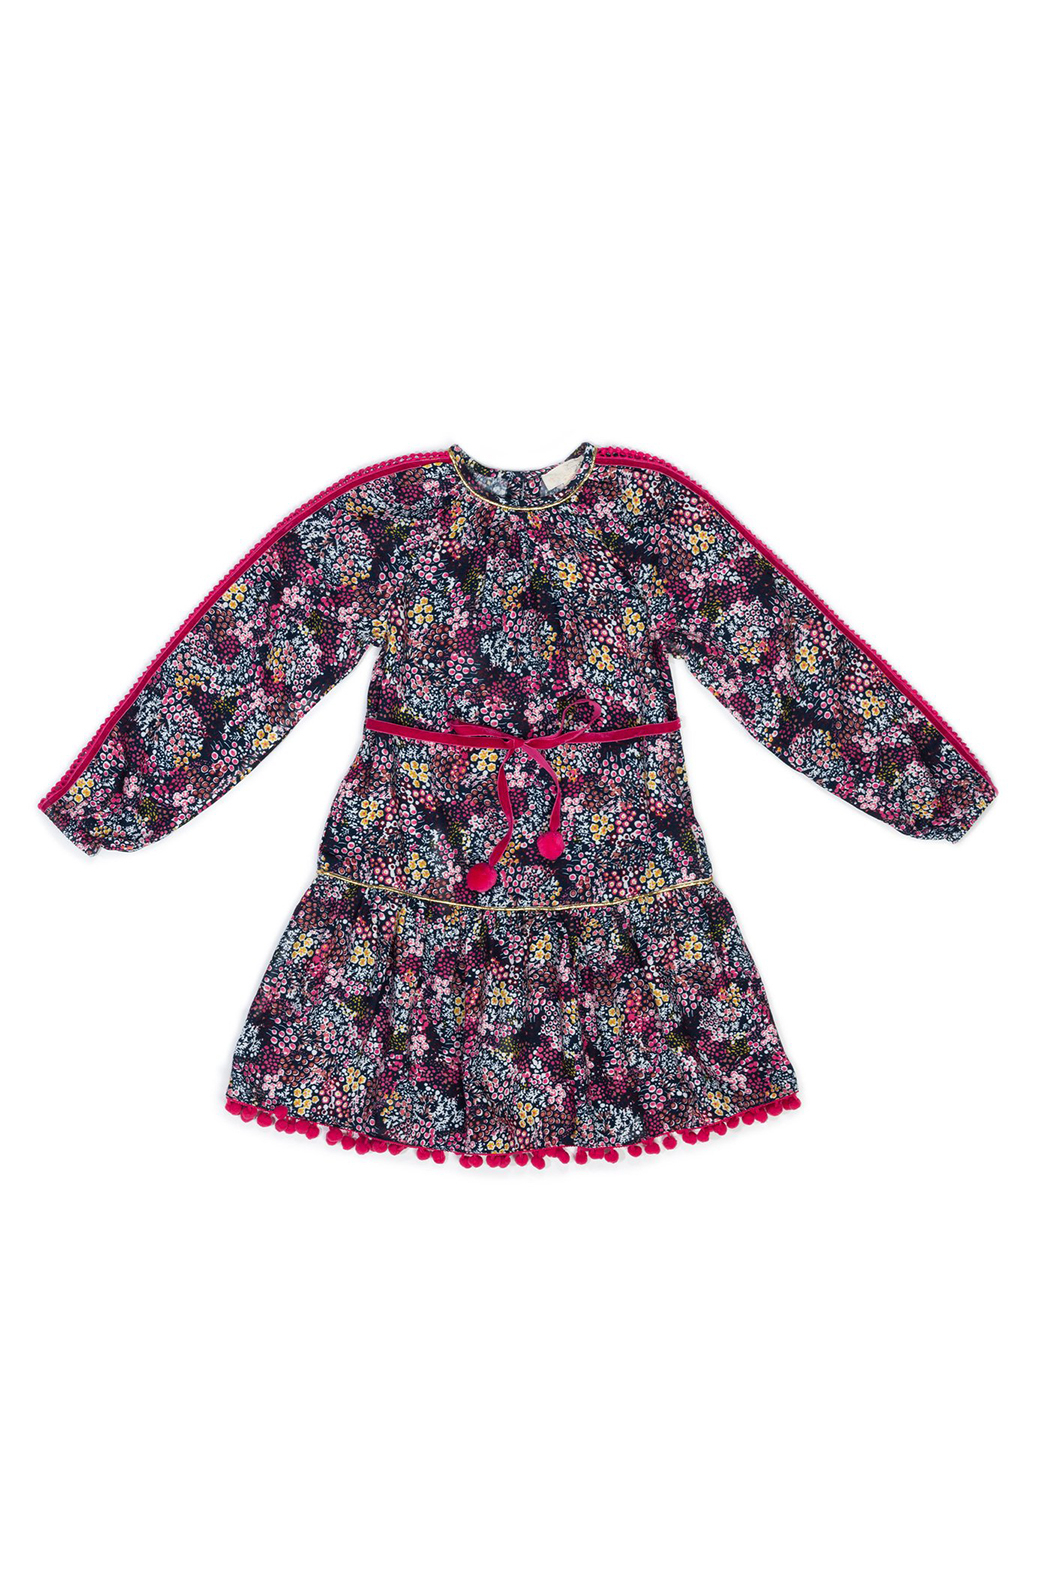 Egg  by Susan Lazar Raspberry Floral Cecily Dress - Main Image